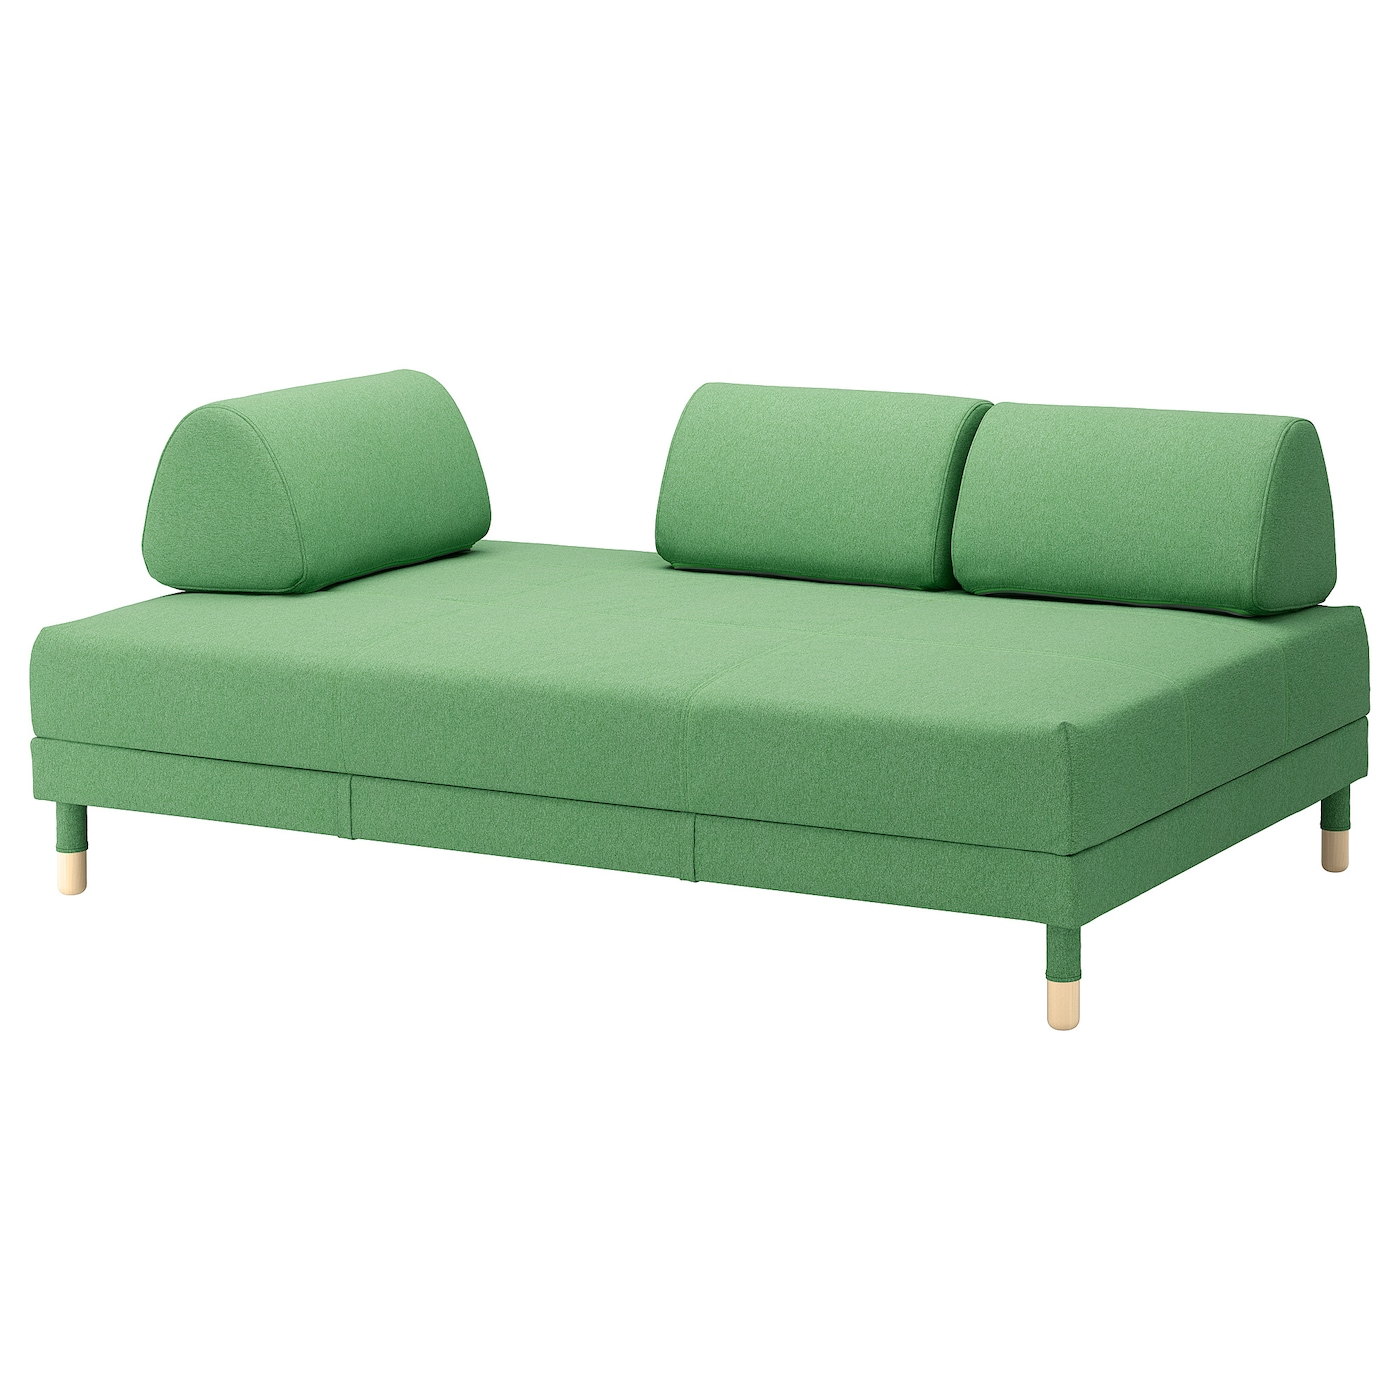 Flottebo Sofa Bed Lysed Green 120 Cm Ikea